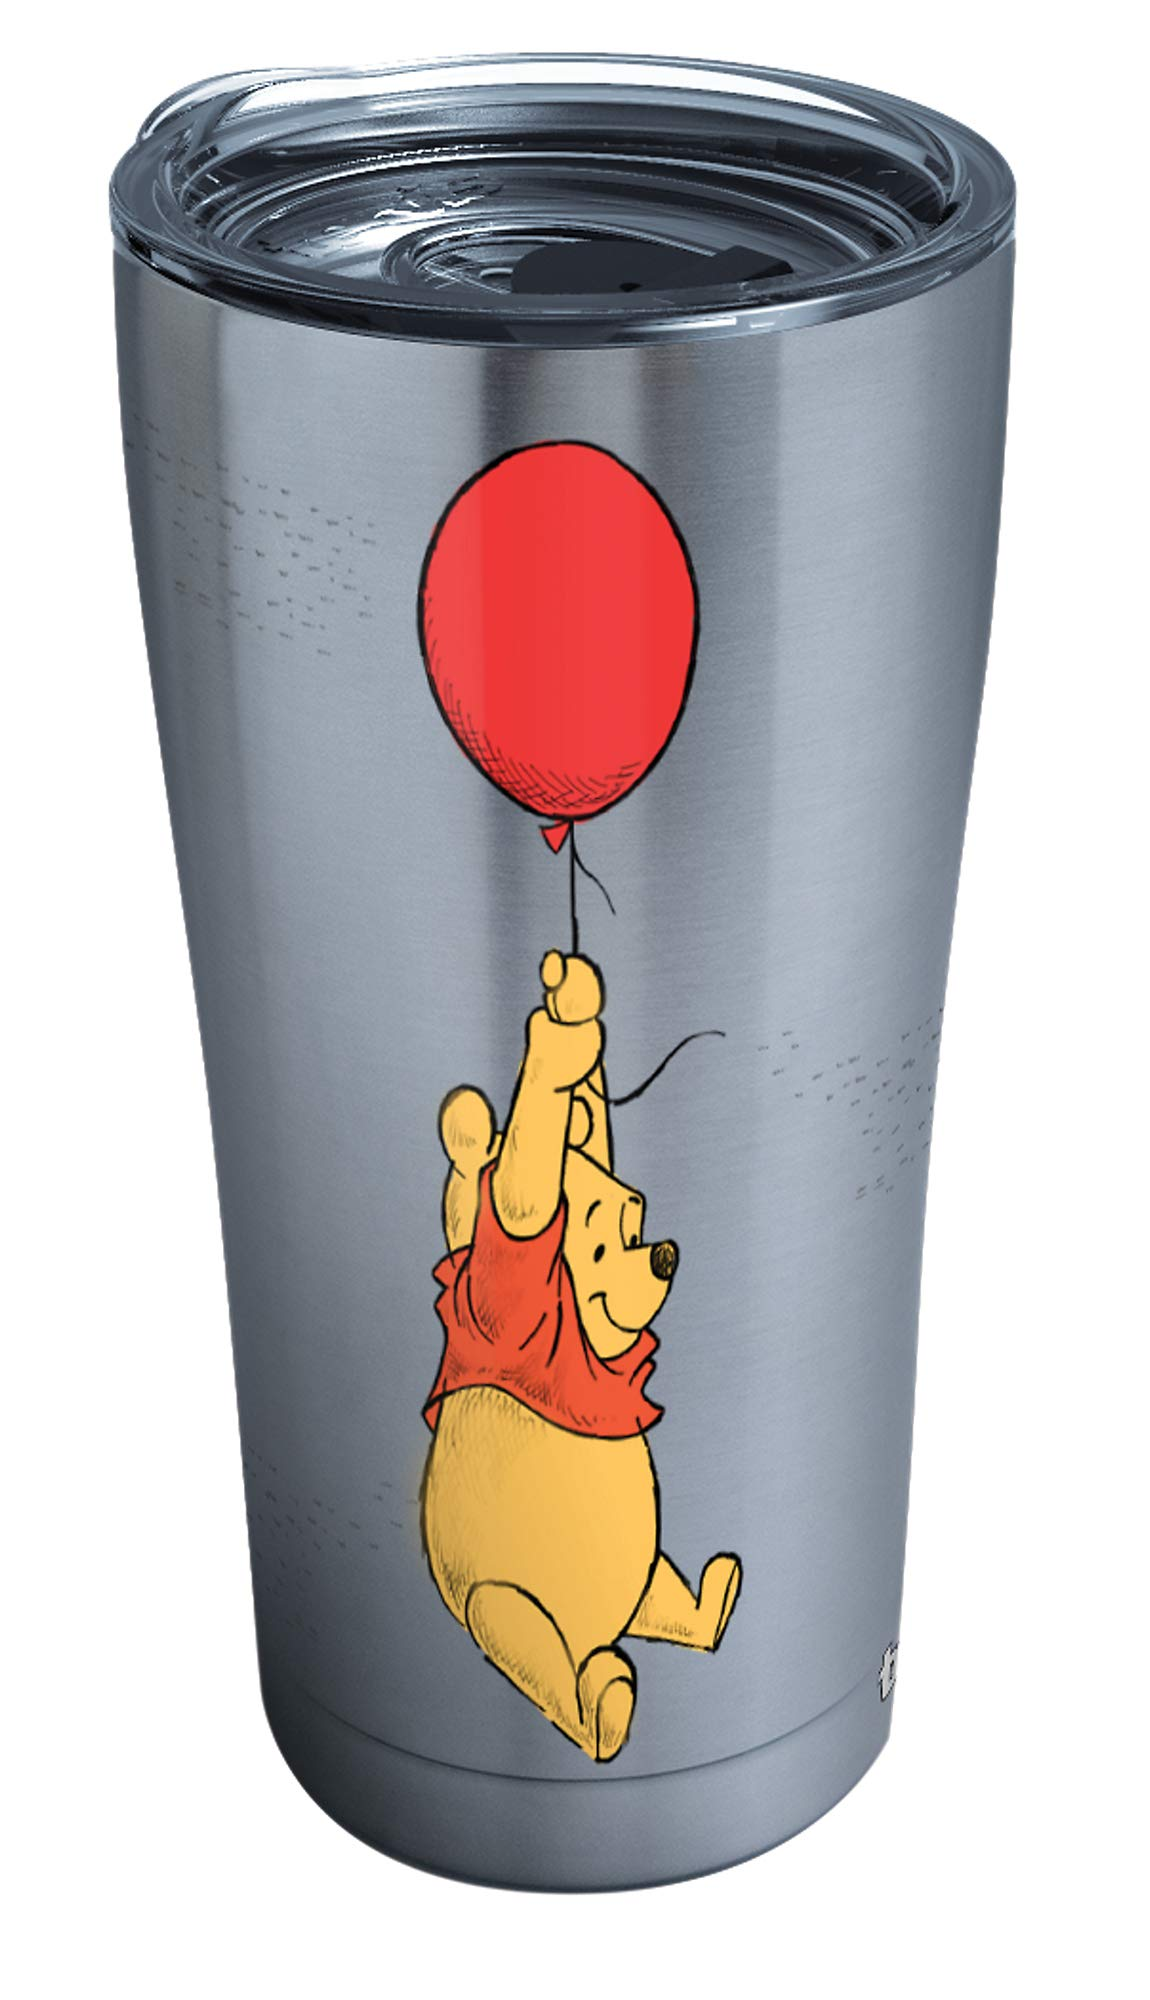 Tervis 1290652 Disney-Winnie the Pooh Balloons Tumbler with Clear and Black Hammer Lid, 20 oz Stainless Steel, Silver